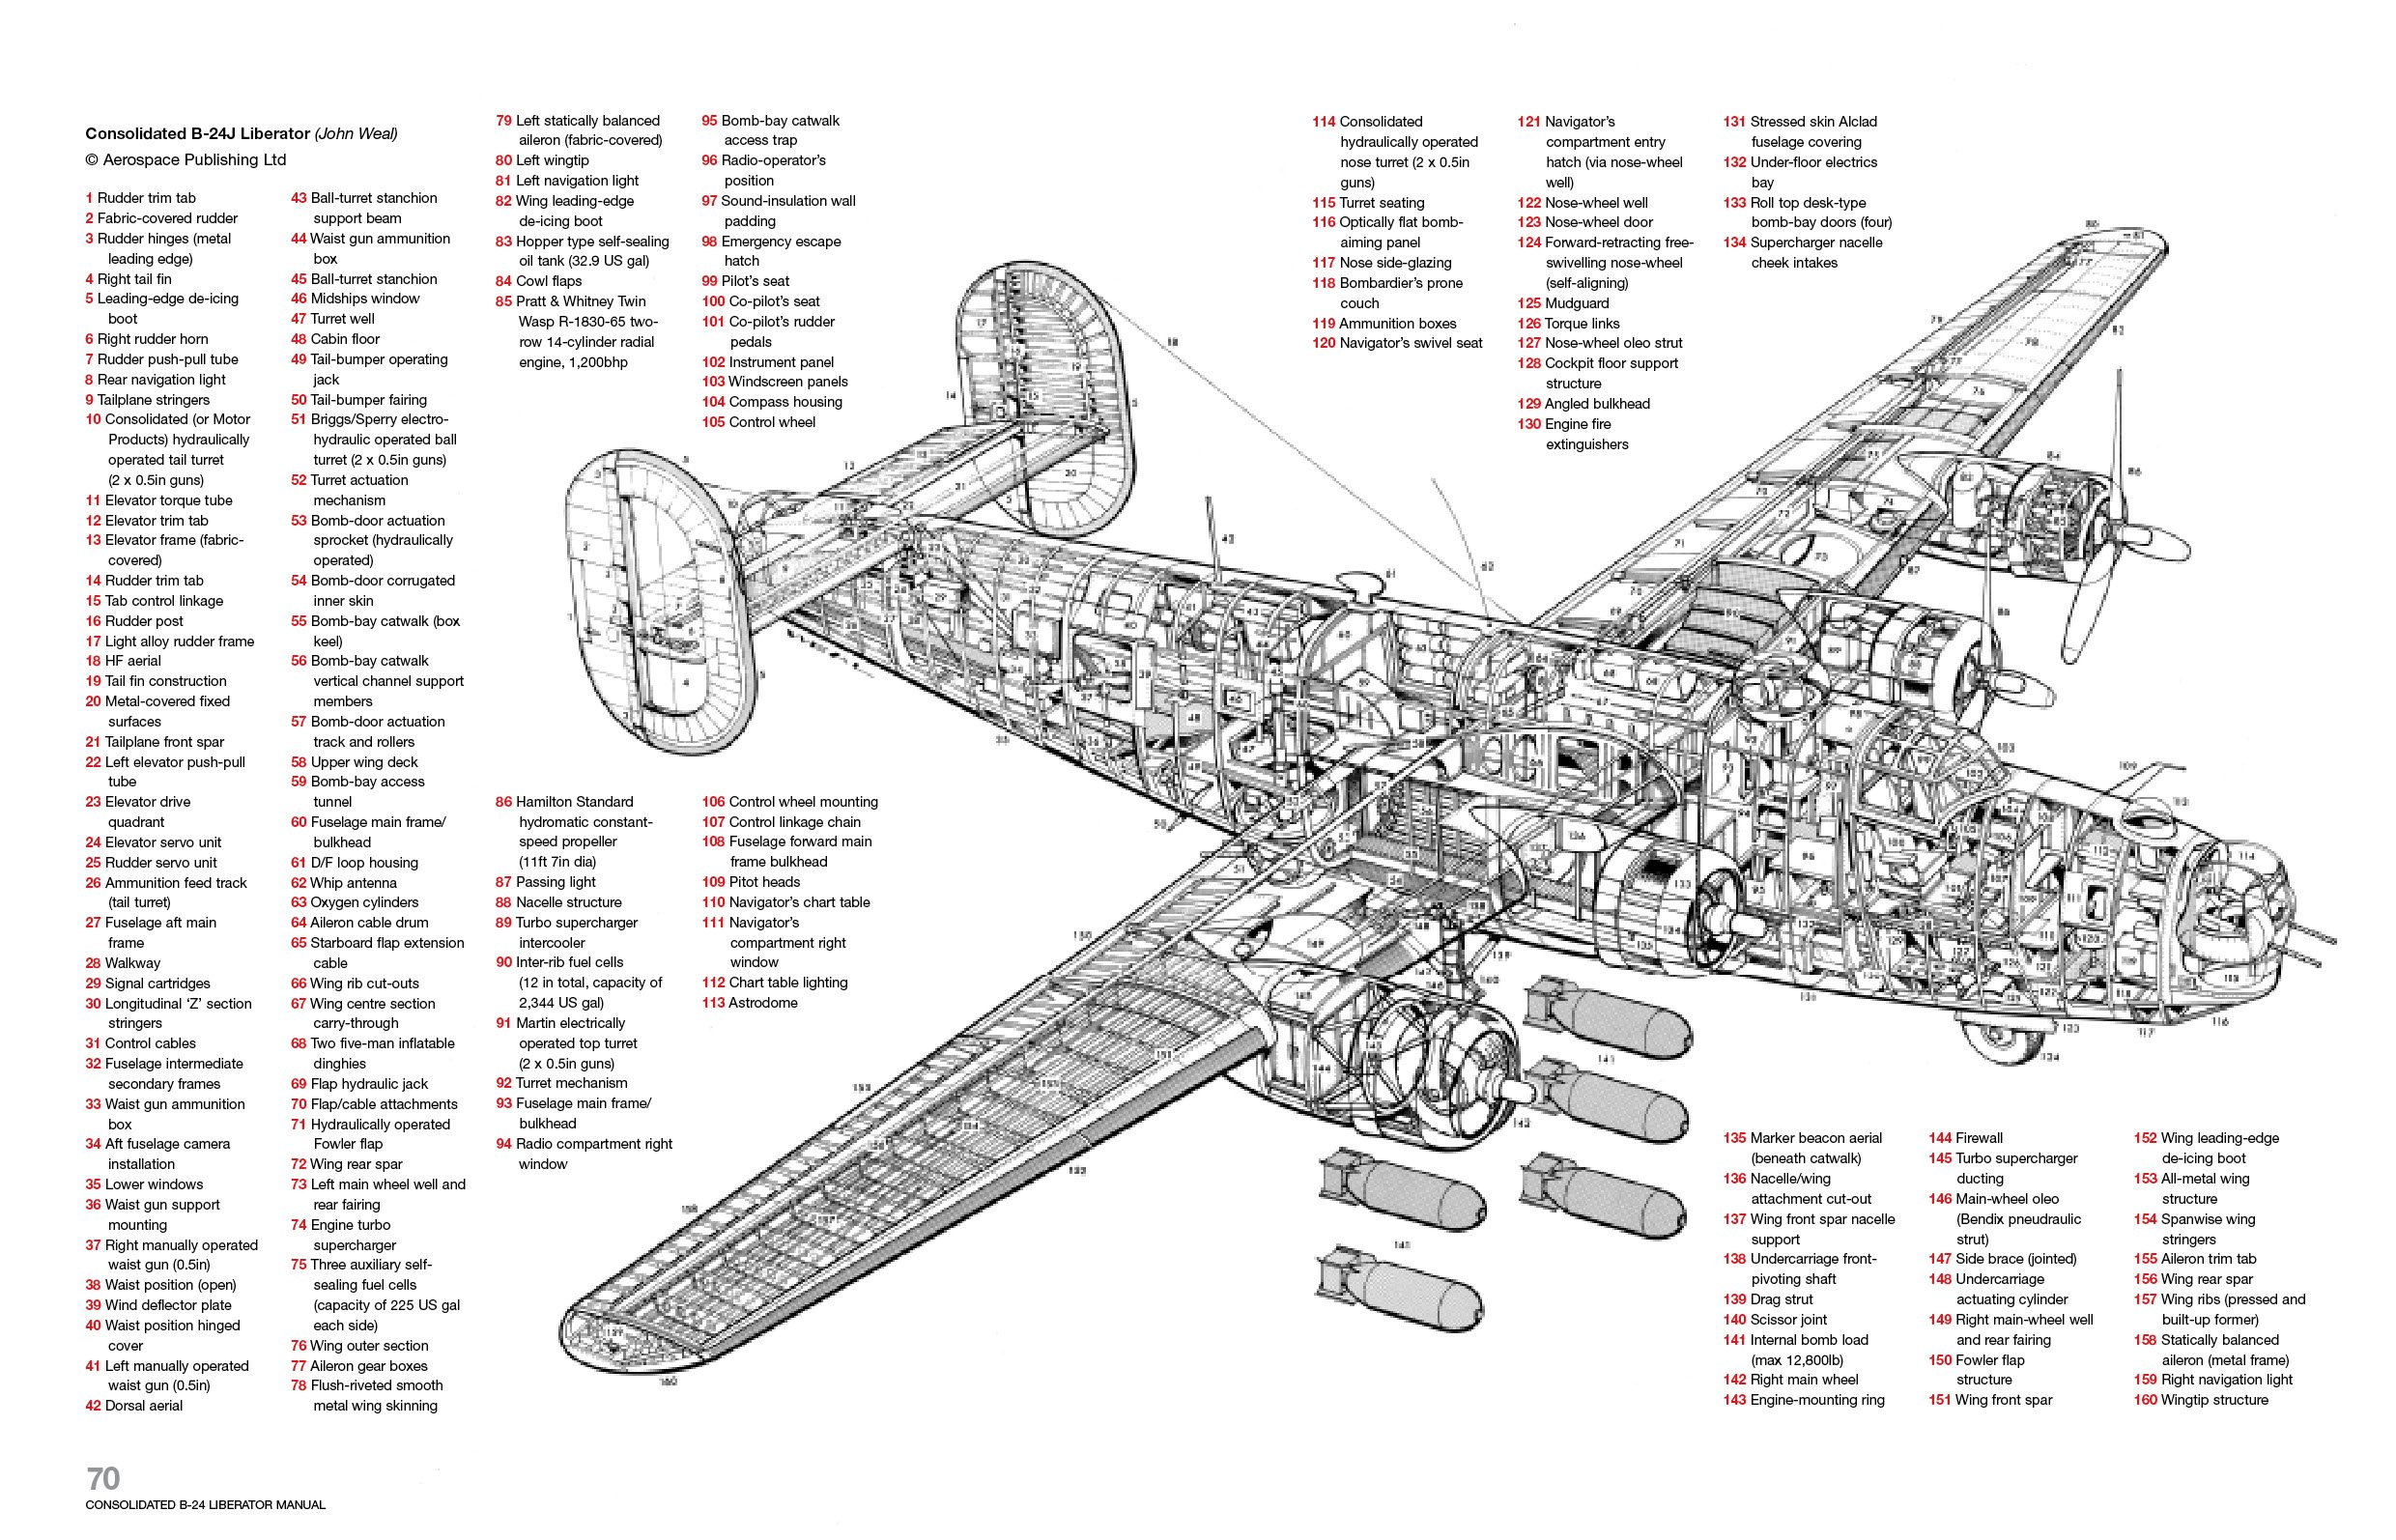 Consolidated B 24 Liberator Manual 1939 Onwards All Marks Owners Diagram Of A Model Airplane Engine Workshop Graeme Douglas 9780857331595 Books